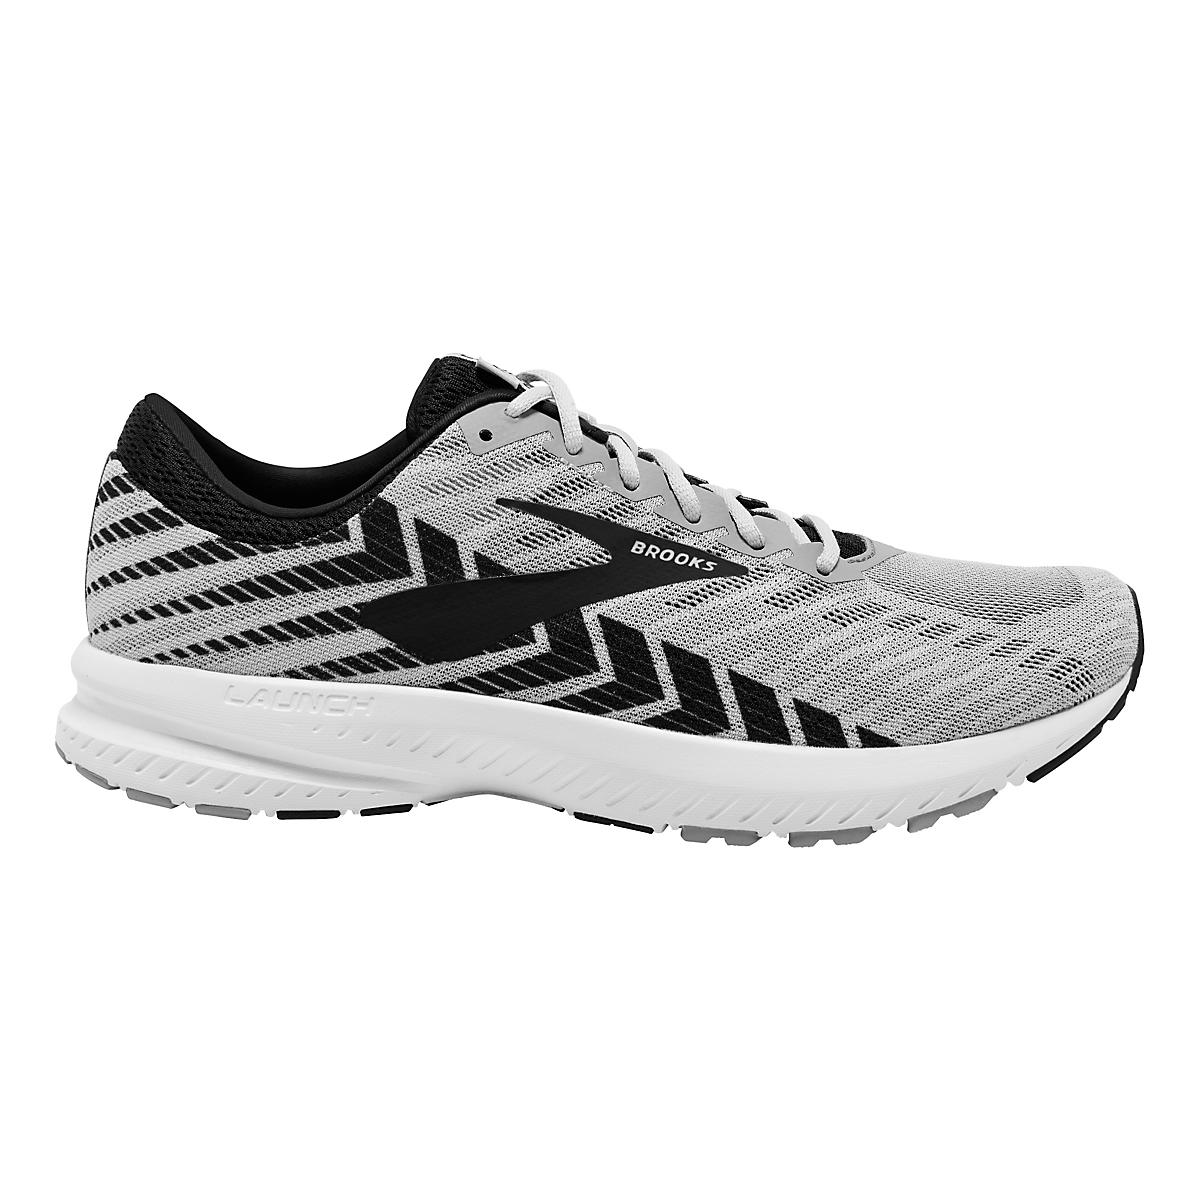 0bfcb8d28d8 Mens Brooks Launch 6 Running Shoe at Road Runner Sports